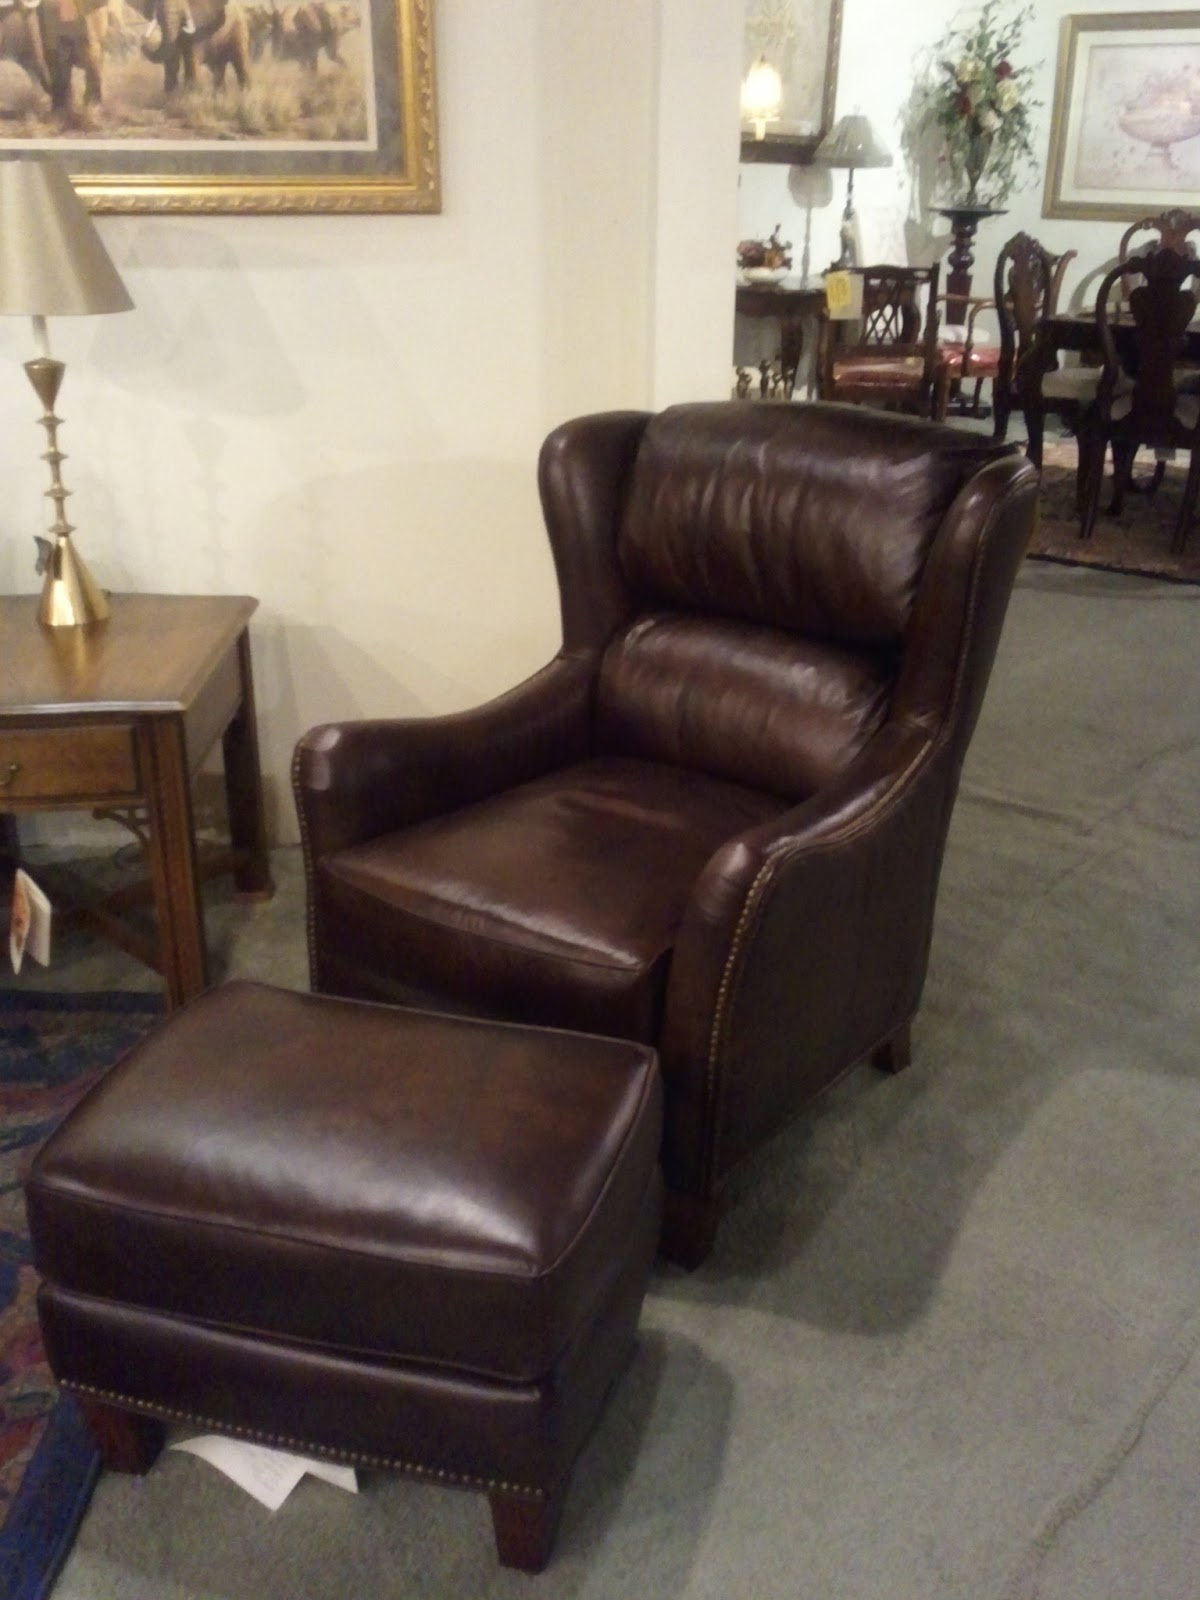 Upholstered Swivel Chair | Leather Chair and Ottoman | Reclining Wingback Chair